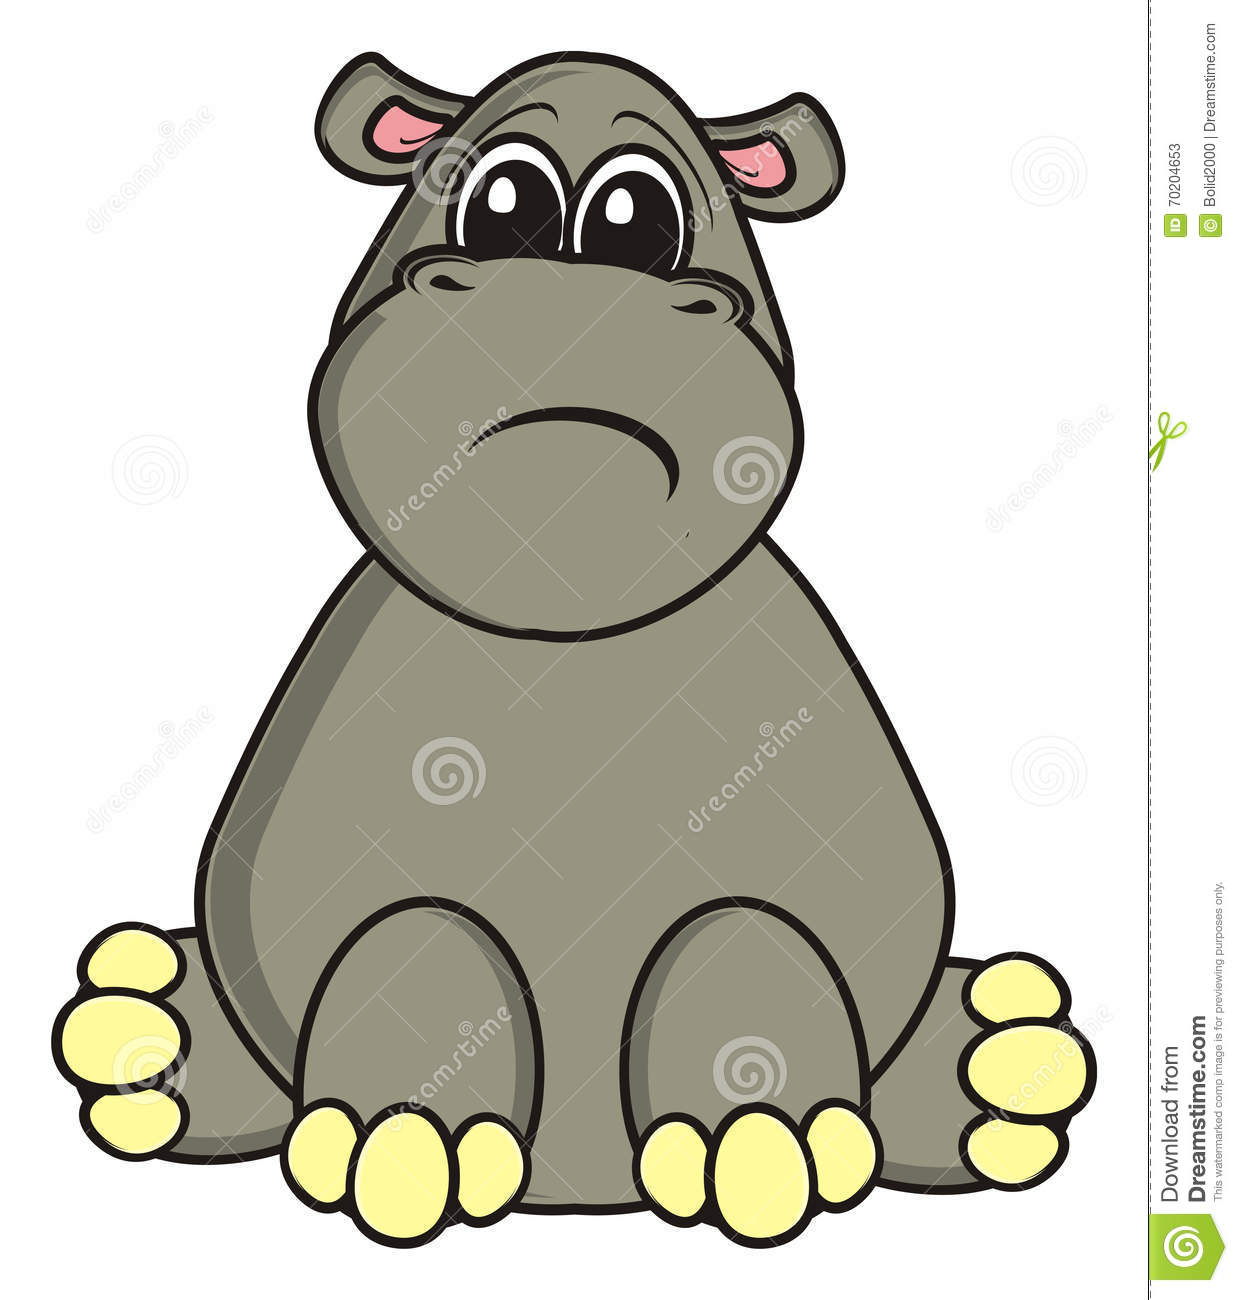 Profile of hippo clipart banner download Hippopotamus Clipart | Free download best Hippopotamus ... banner download